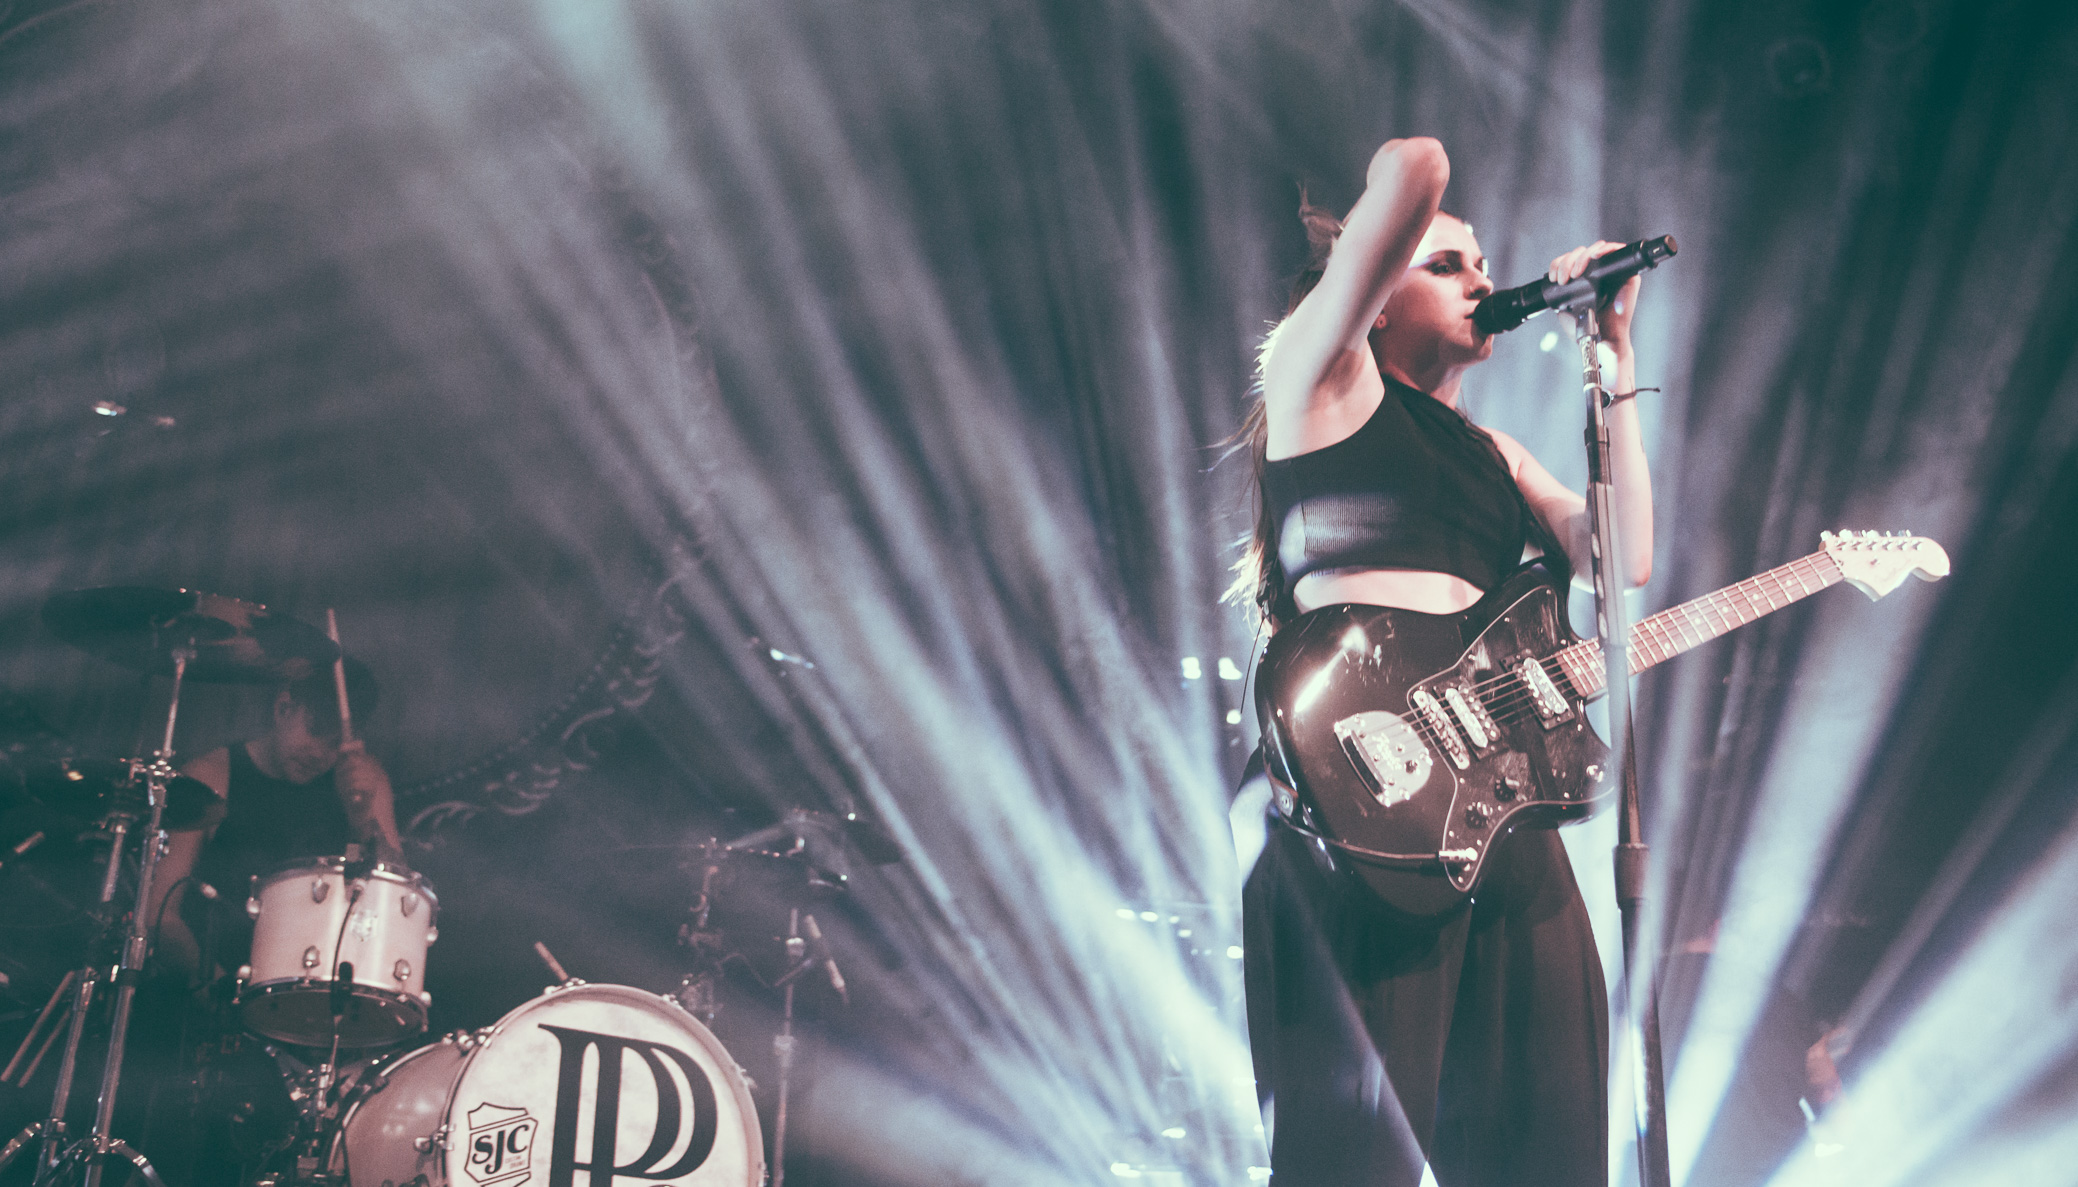 PVRIS performs at Center Stage Theater in Atlanta, Georgia on May 12th, 2016. (Photo by David A. Smith/DSmithScenes)